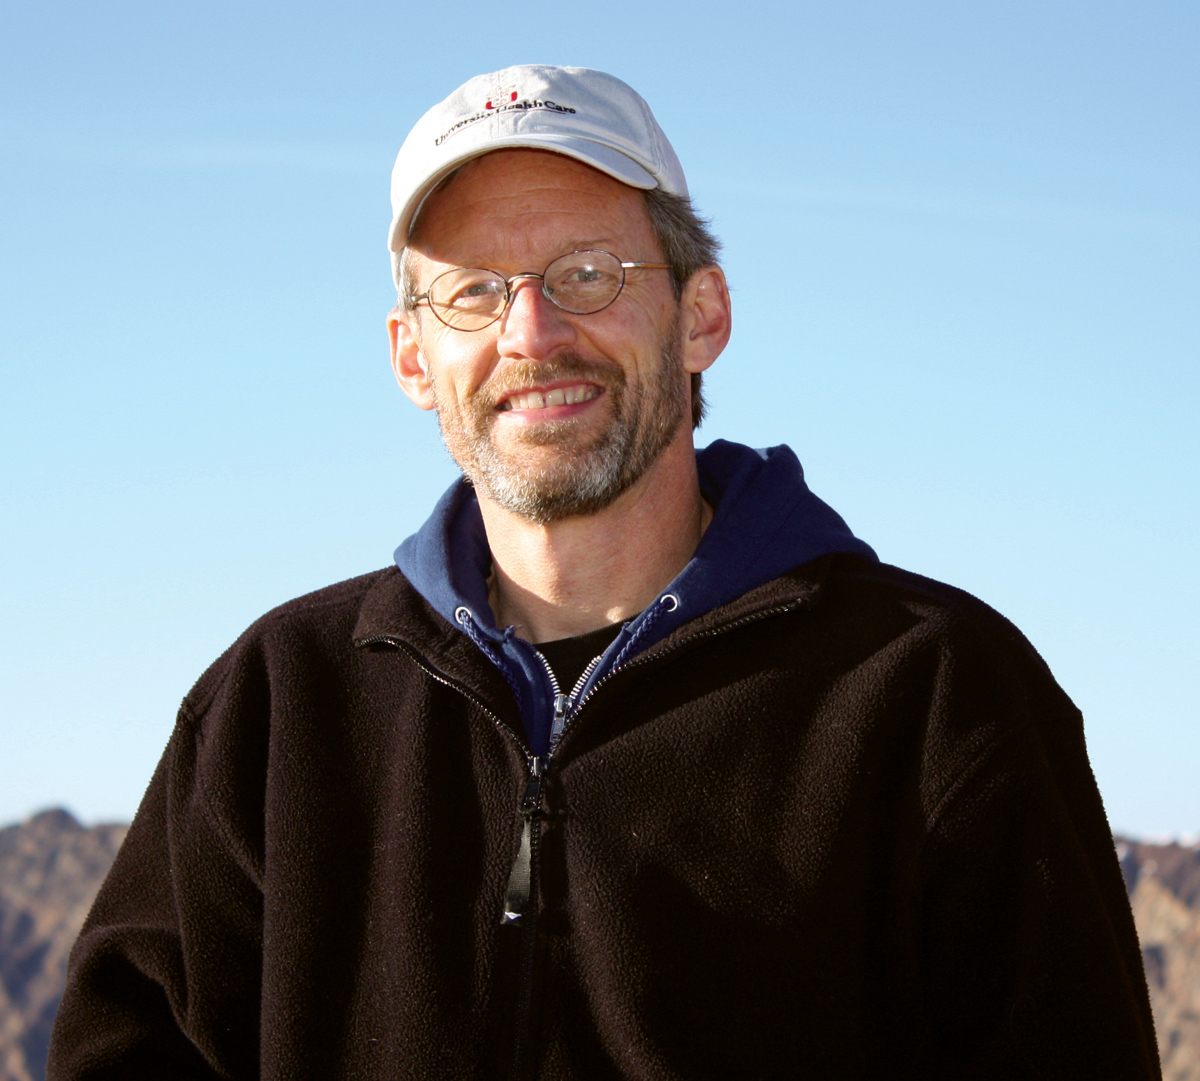 Michael Hylland, Geologist, Utah Geological Survey